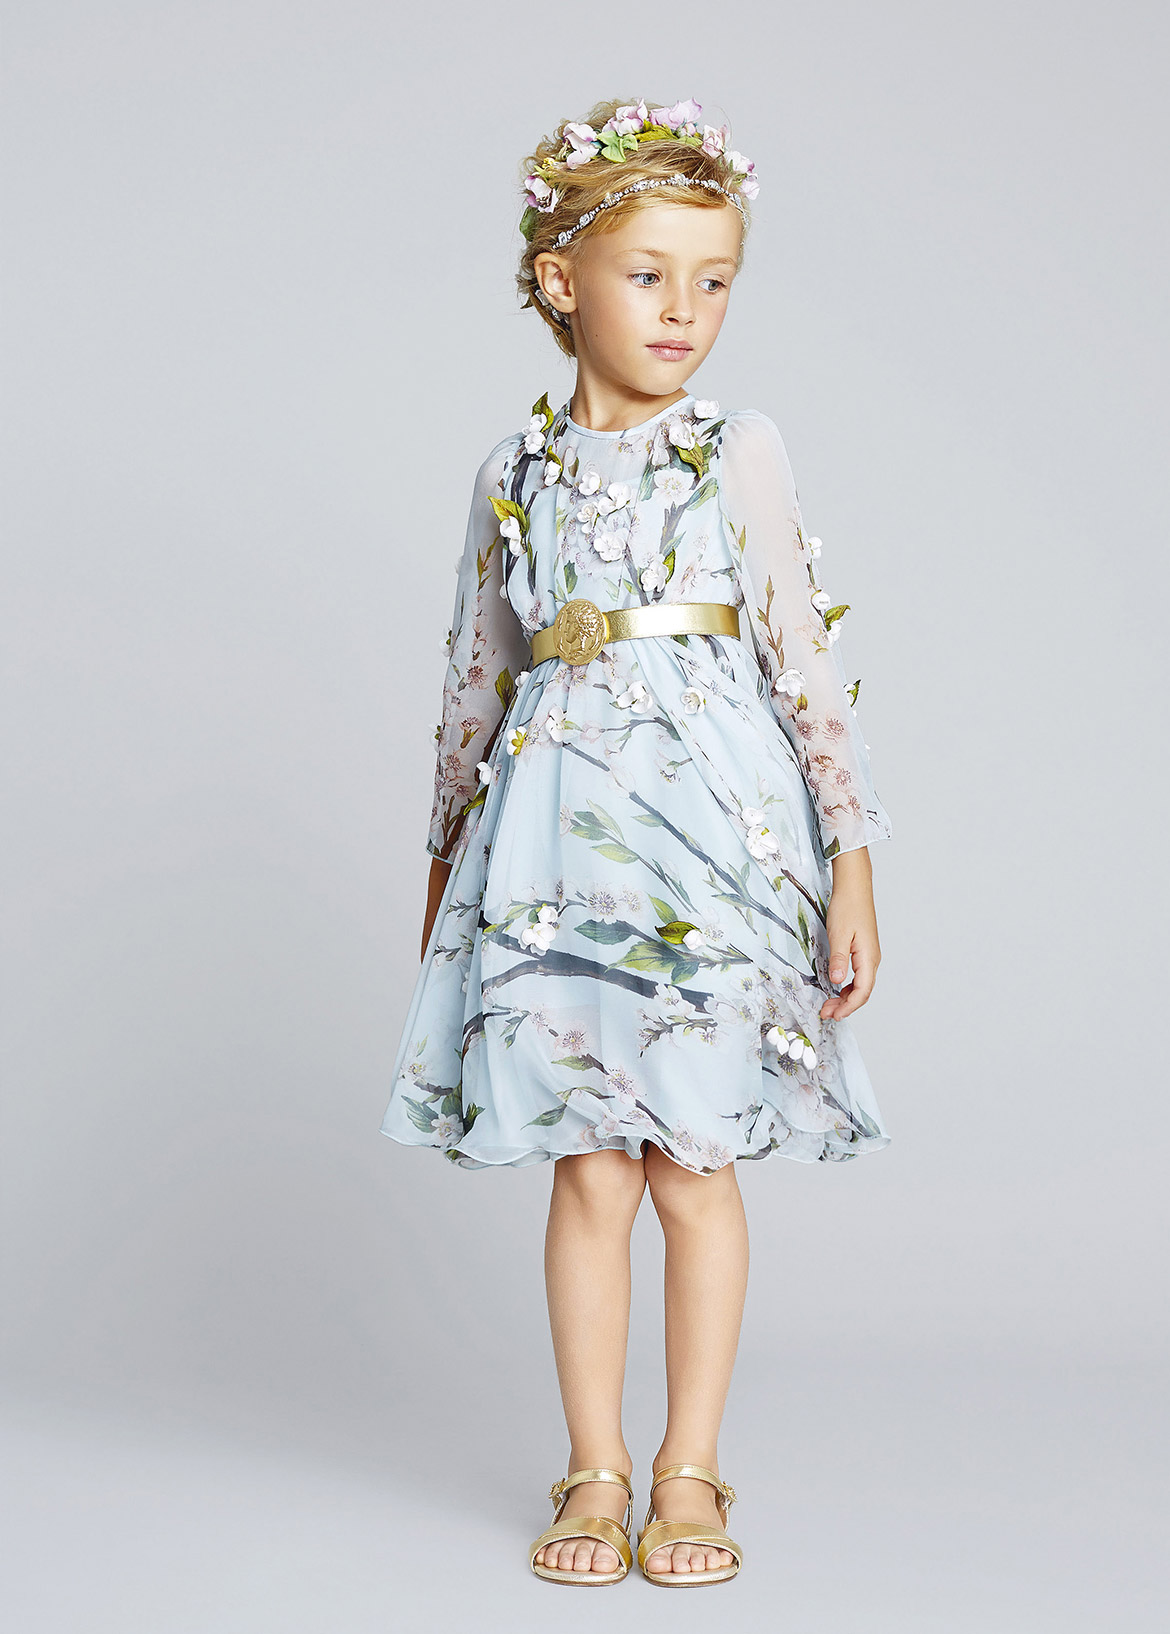 dolce-and-gabbana-ss-2014-child-collection (35)